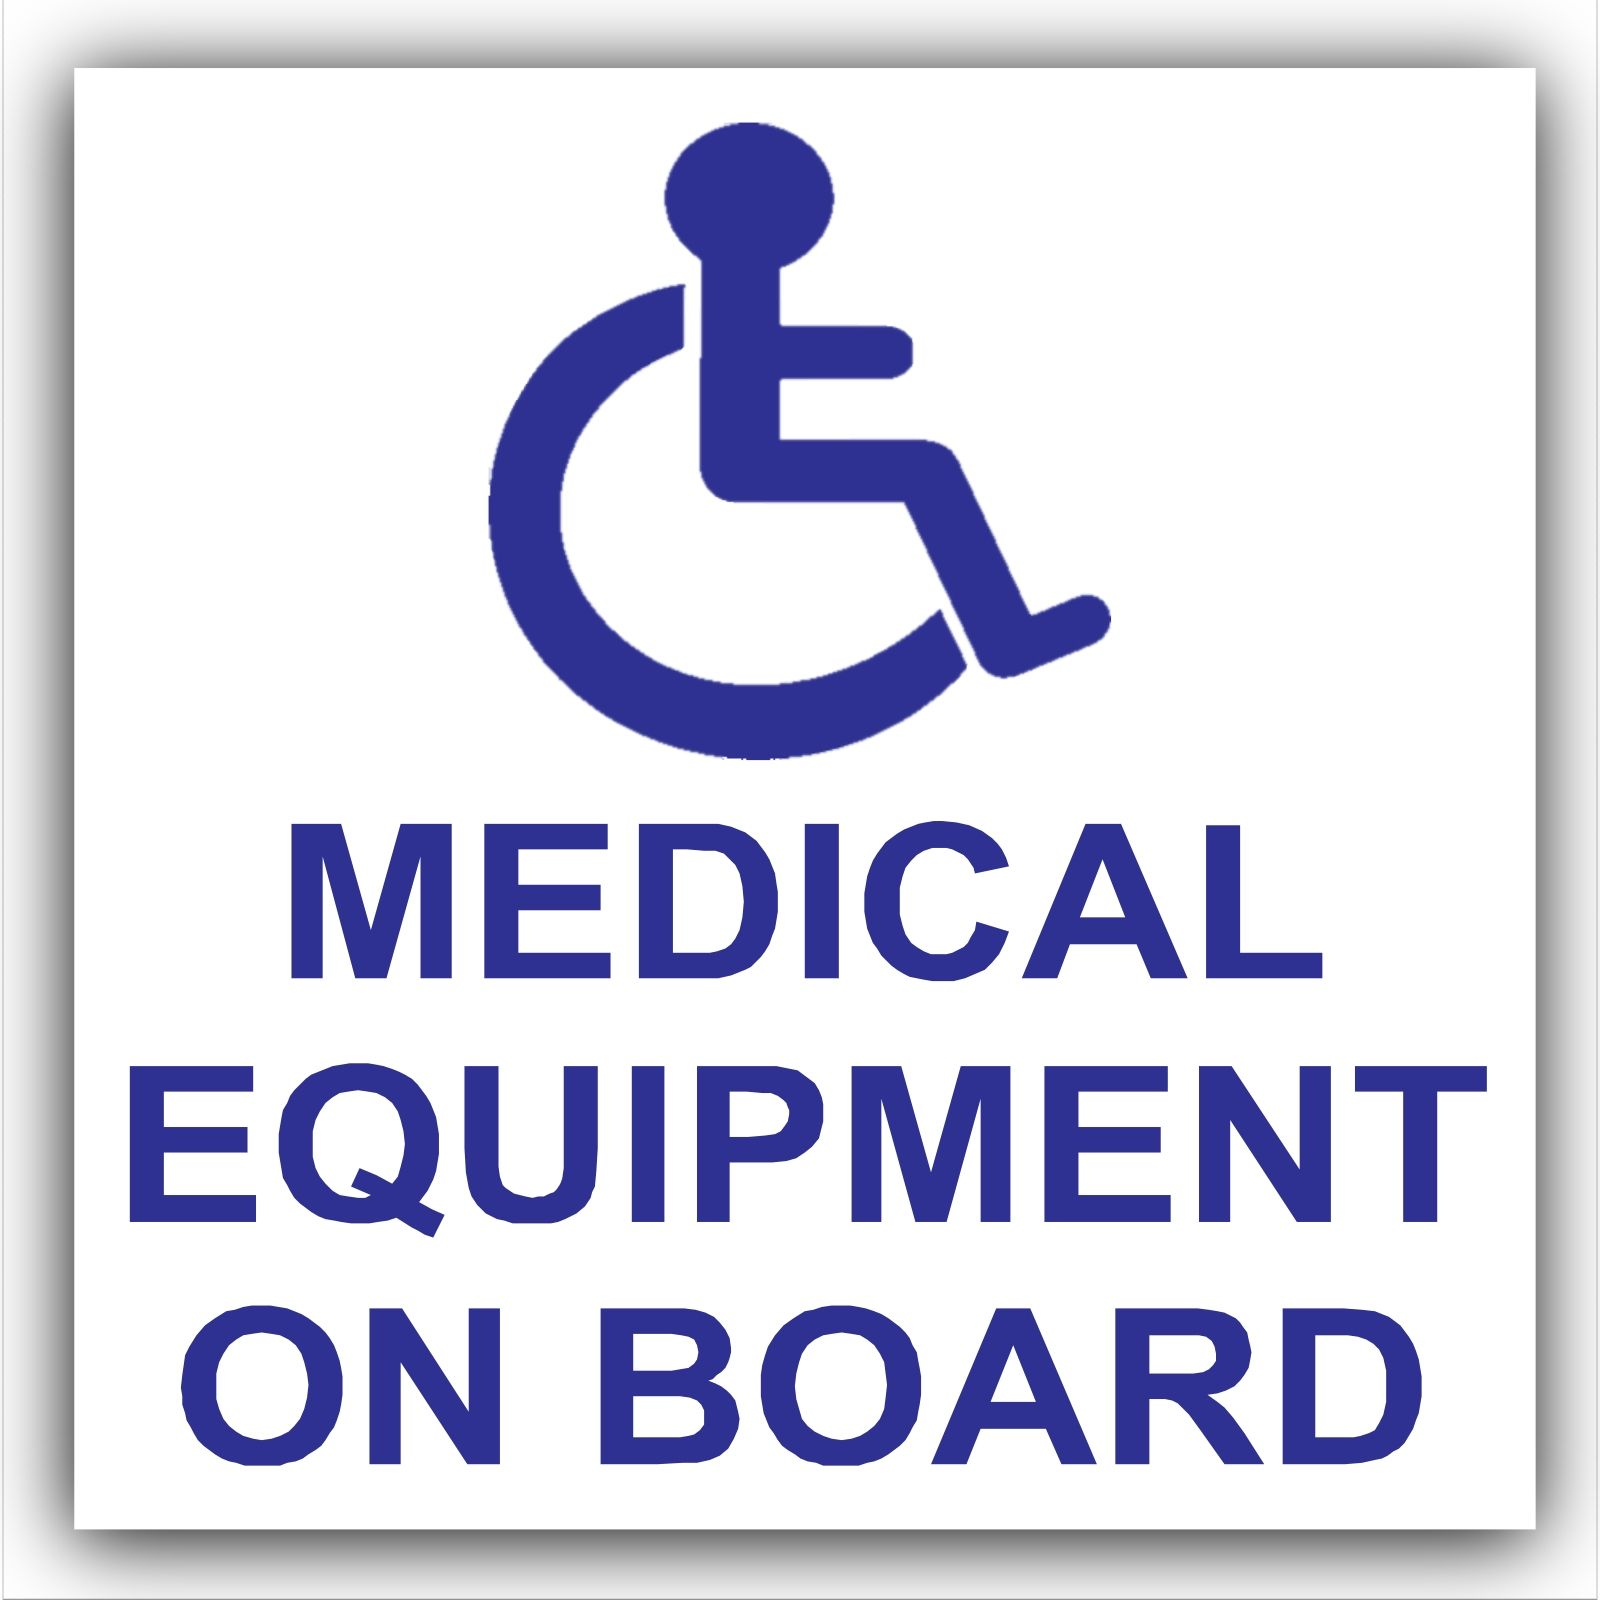 1 x Medical Equipment On Board-Self Adhesive Vinyl Sticker